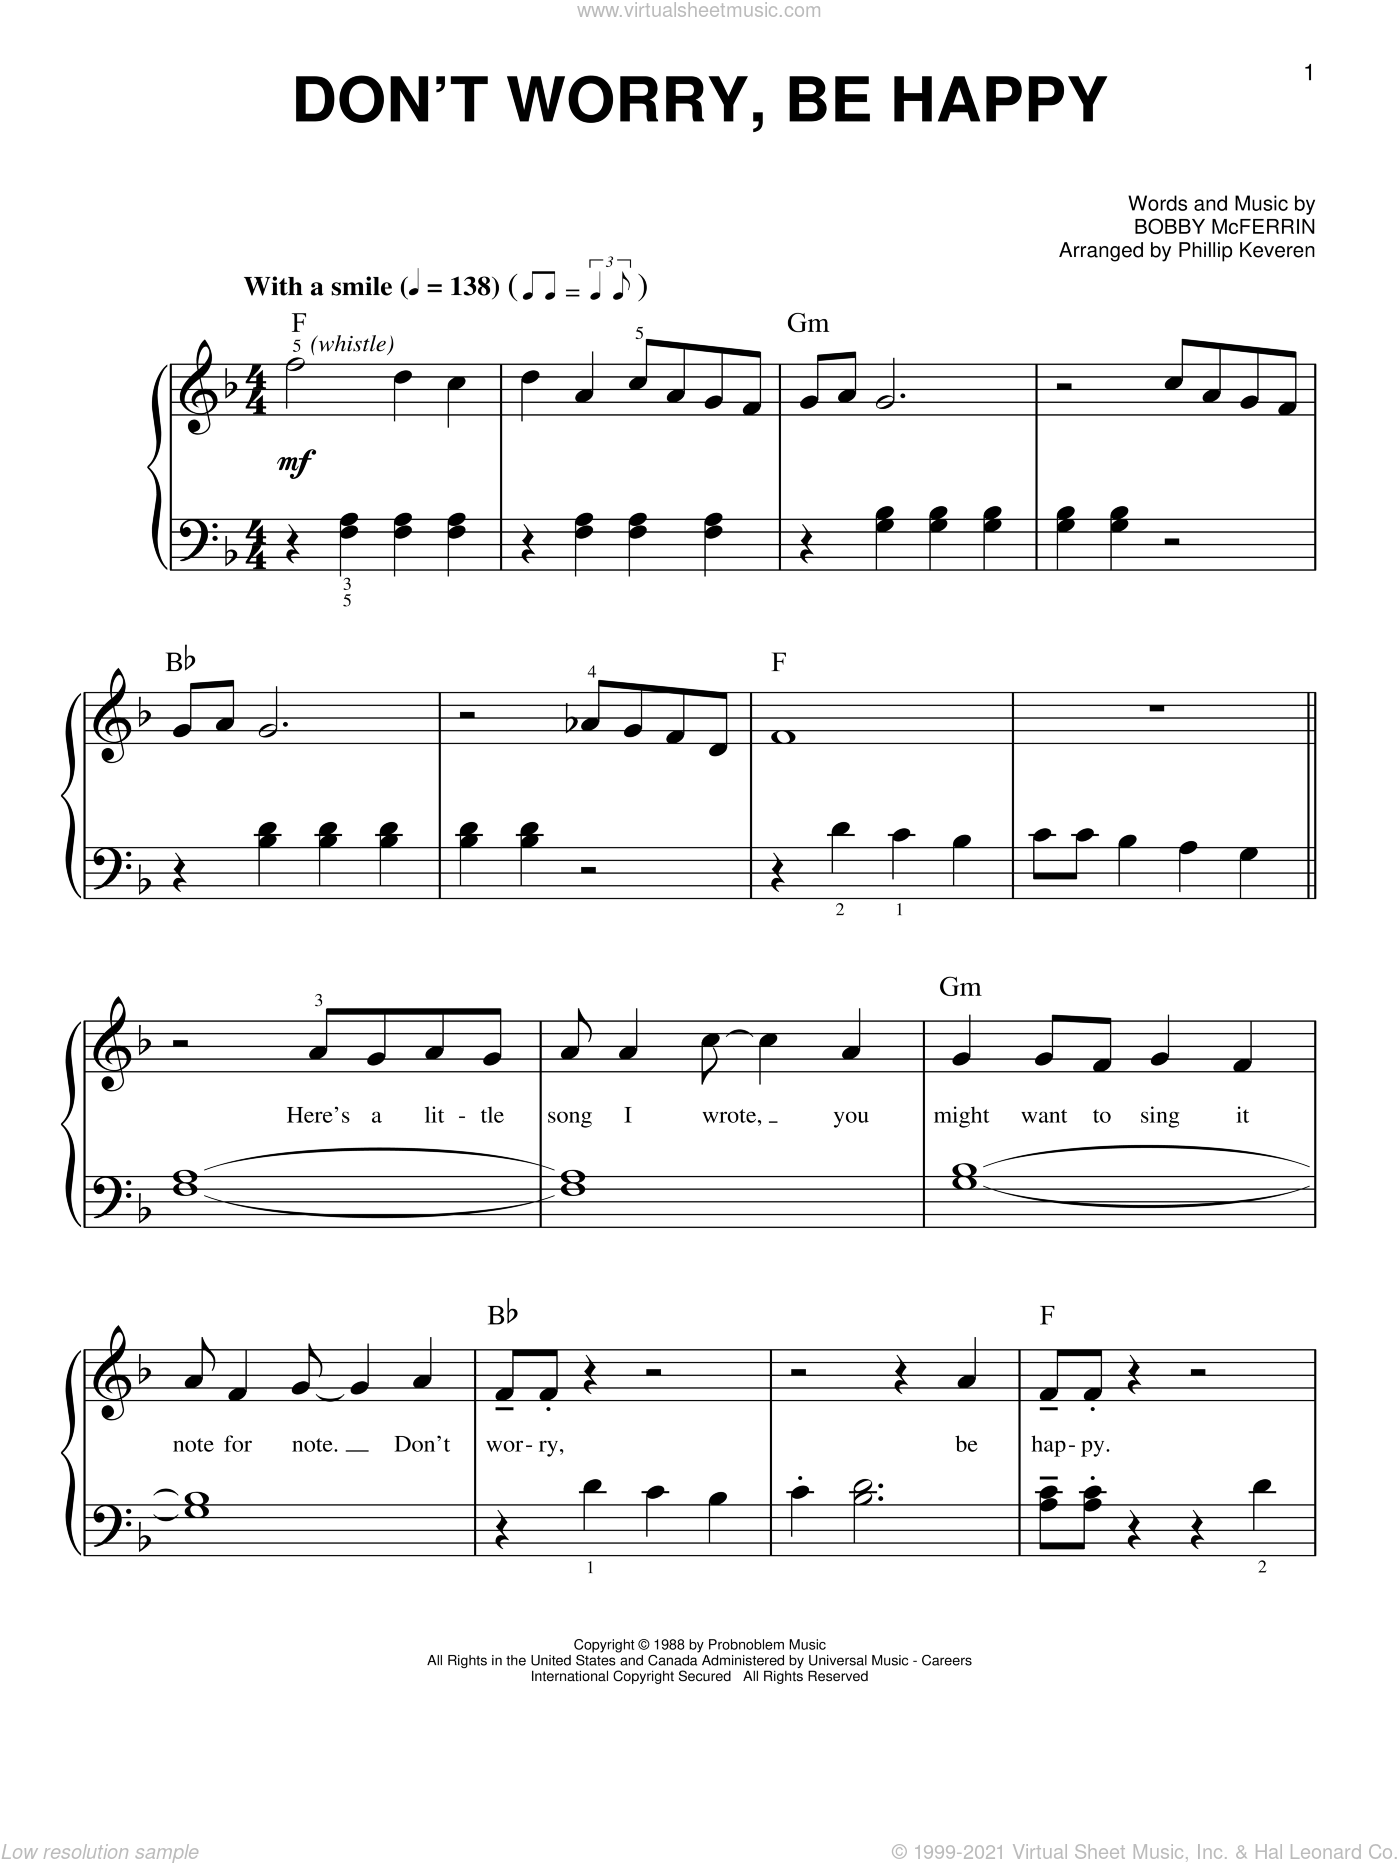 Don't Worry, Be Happy sheet music for piano solo by Bobby McFerrin and Phillip Keveren, easy skill level